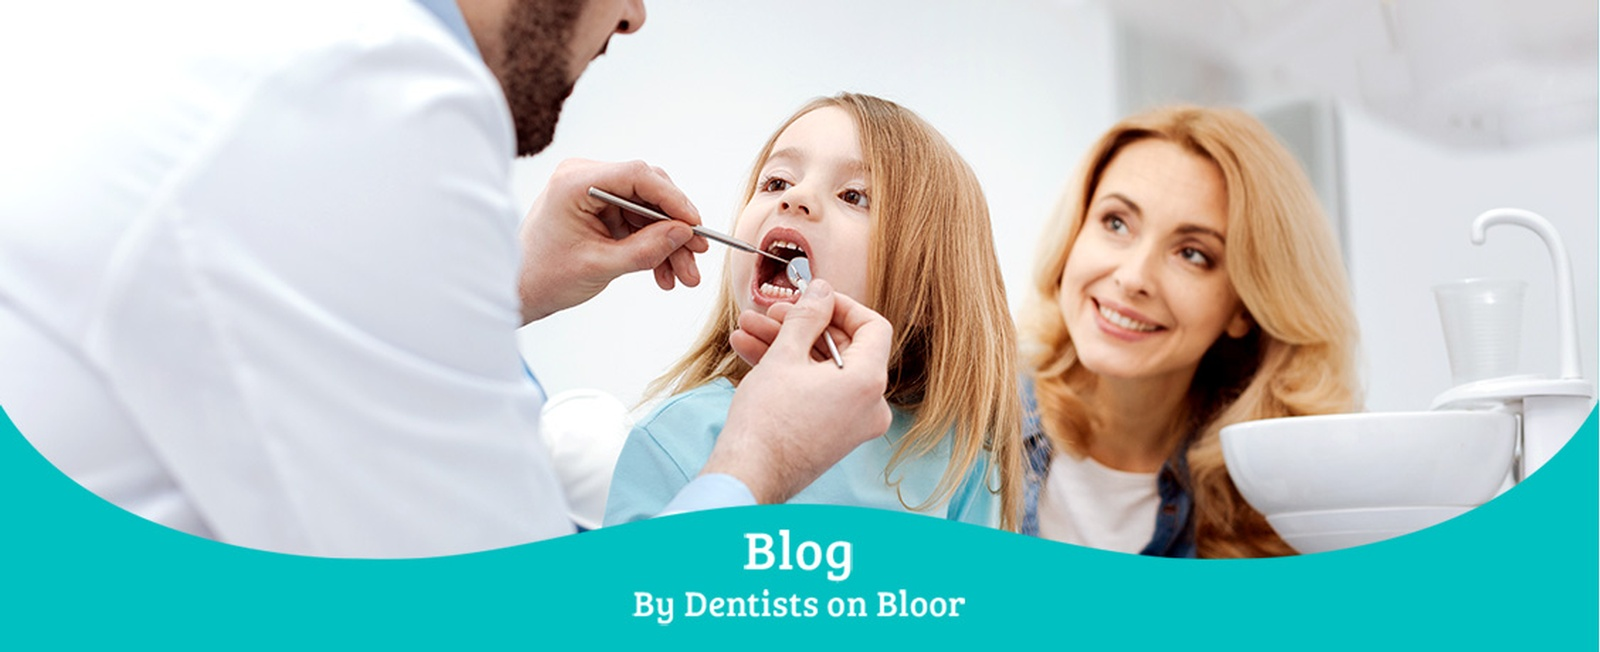 Blog by Dentists on Bloor